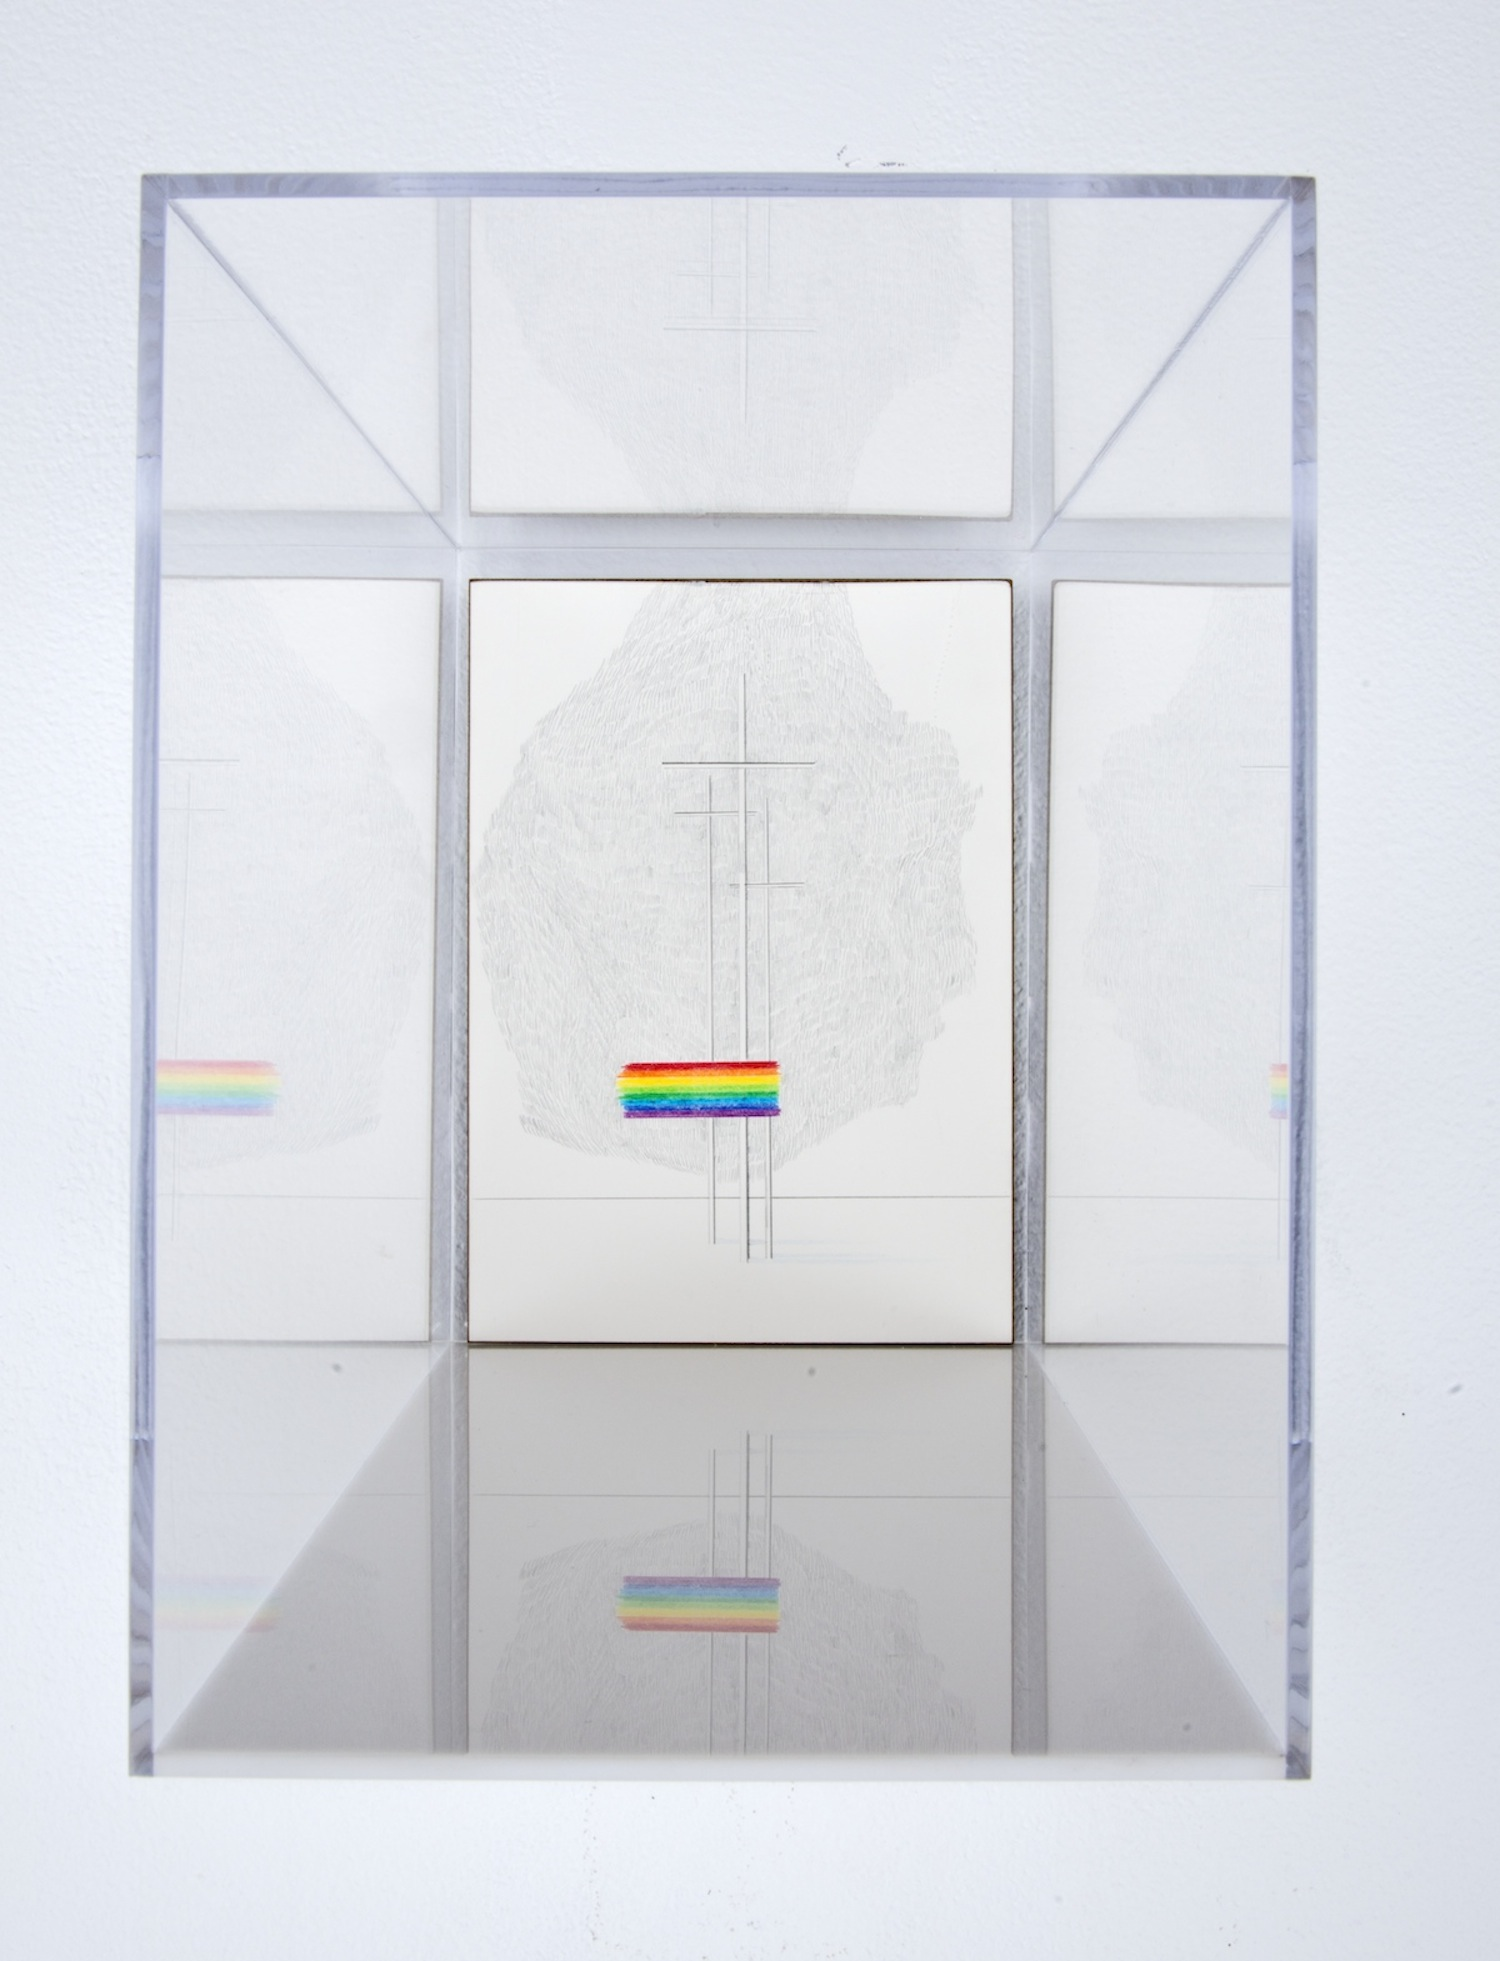 GOD'S COVENANT WITH HIMSELF IN A PRISM 03  colored pencil on clayboard, plexiglass  12in. x 5in. x 7in.